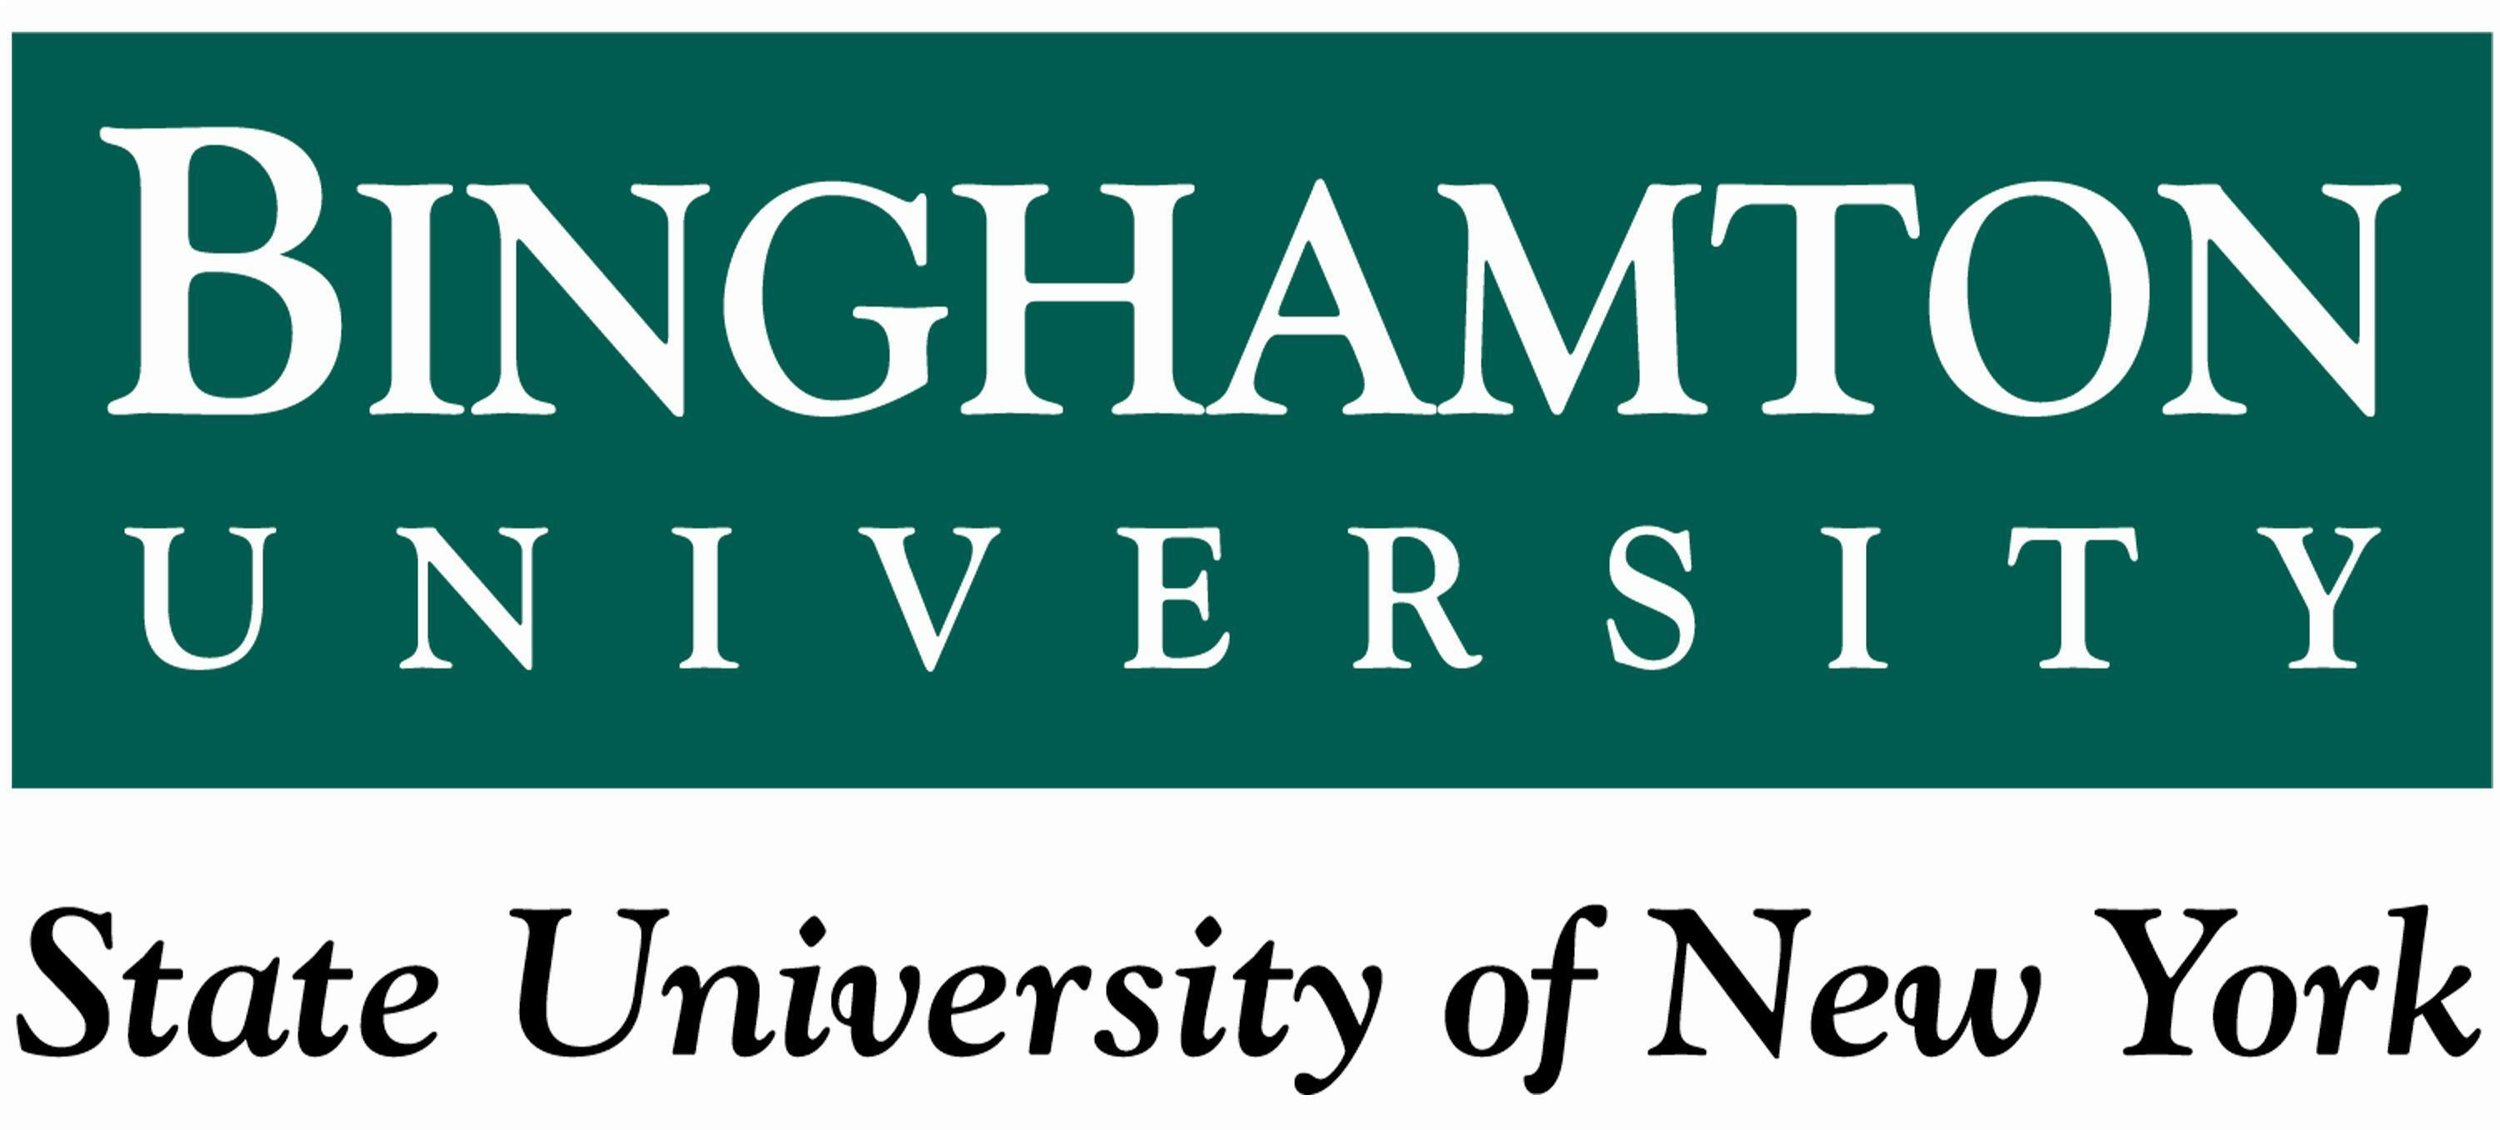 Binghamton_University_State_University_of_New_York_logo_(7).jpg